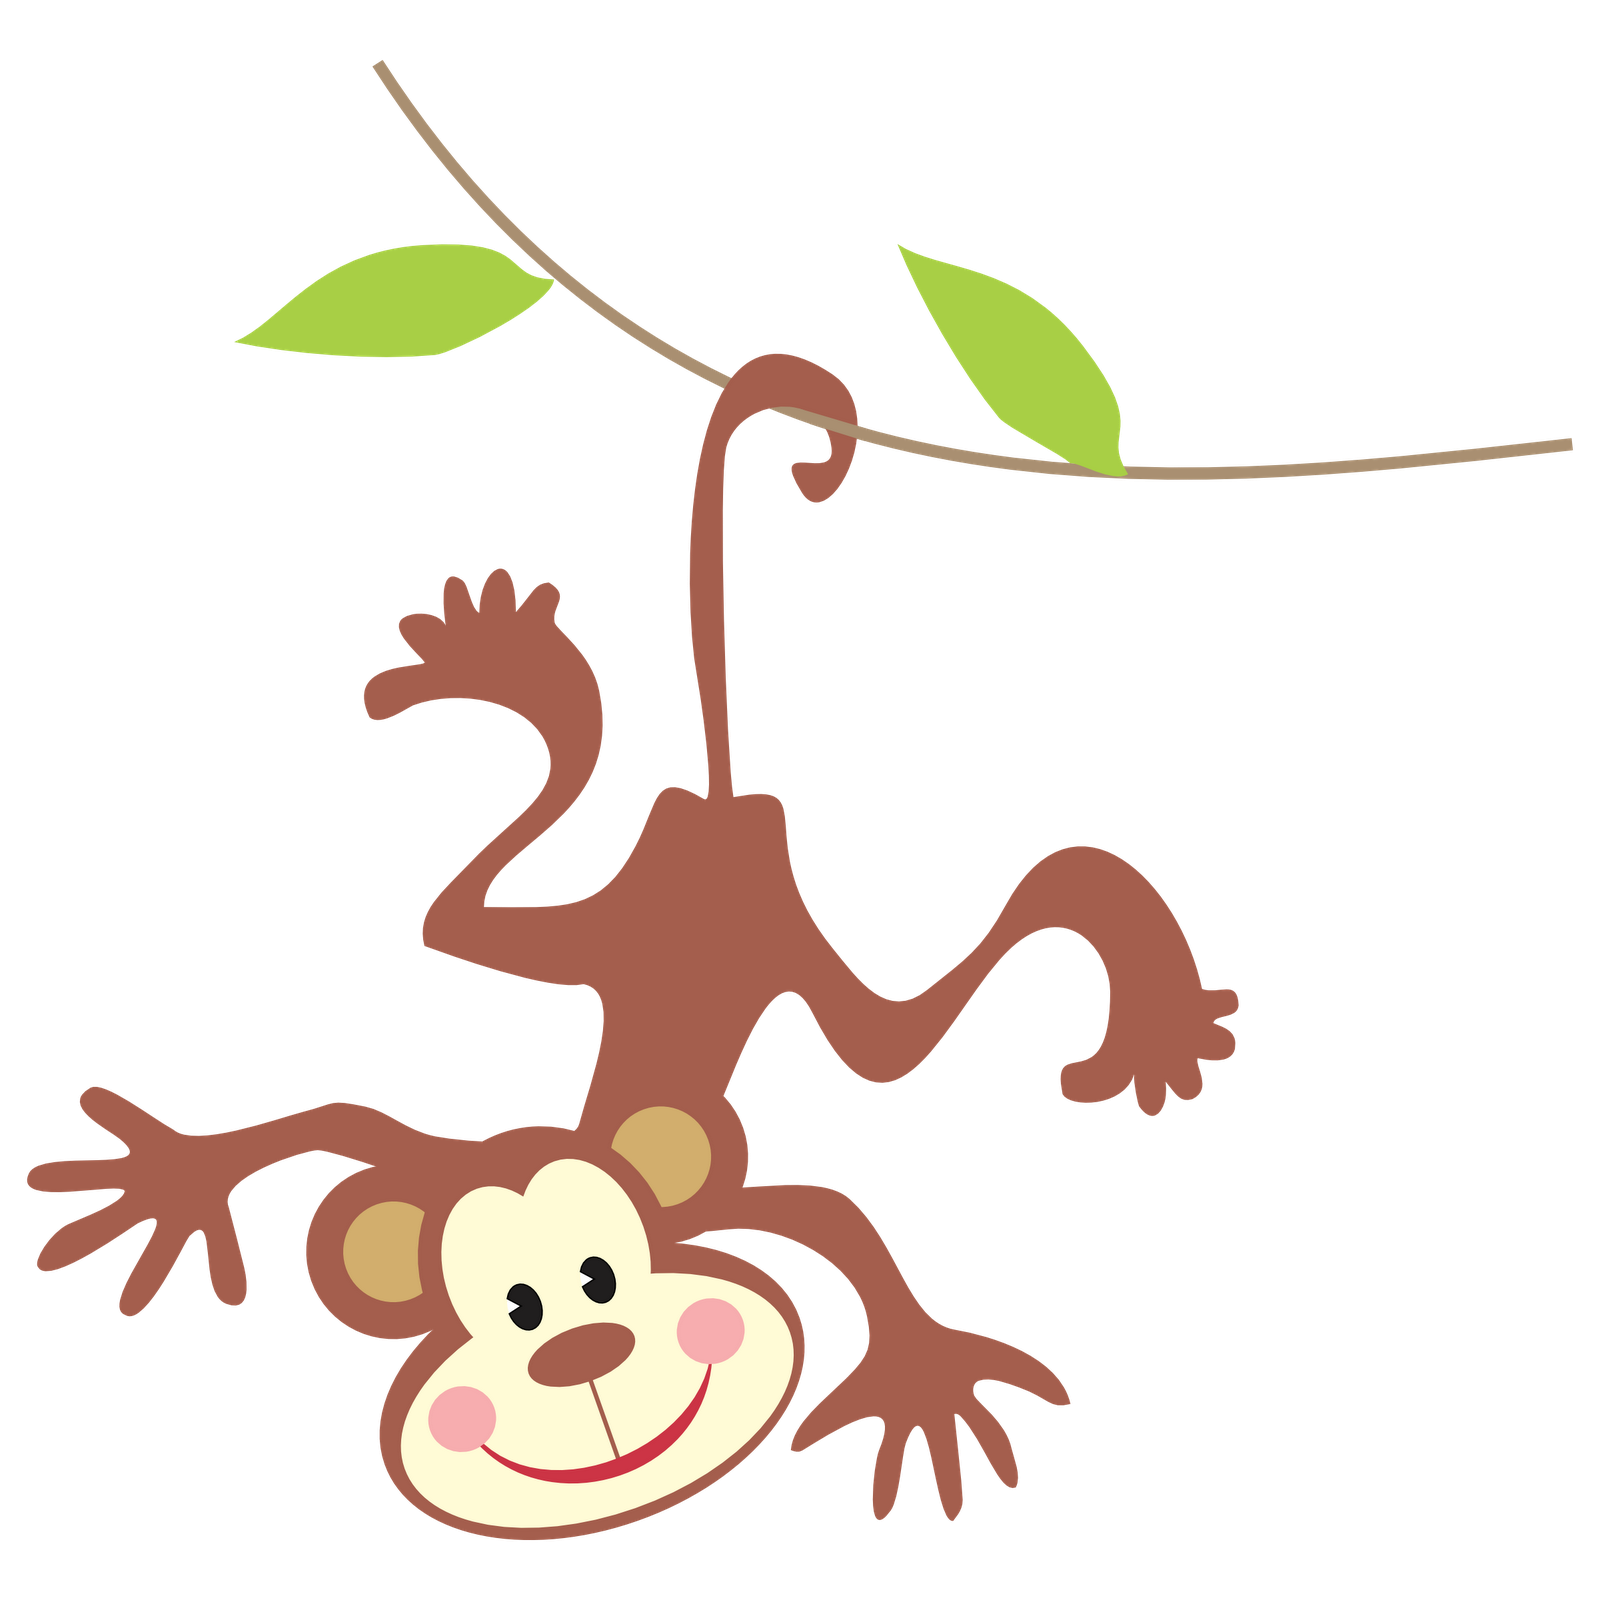 Free monkey clip art | Clipart Panda - Free Clipart Images